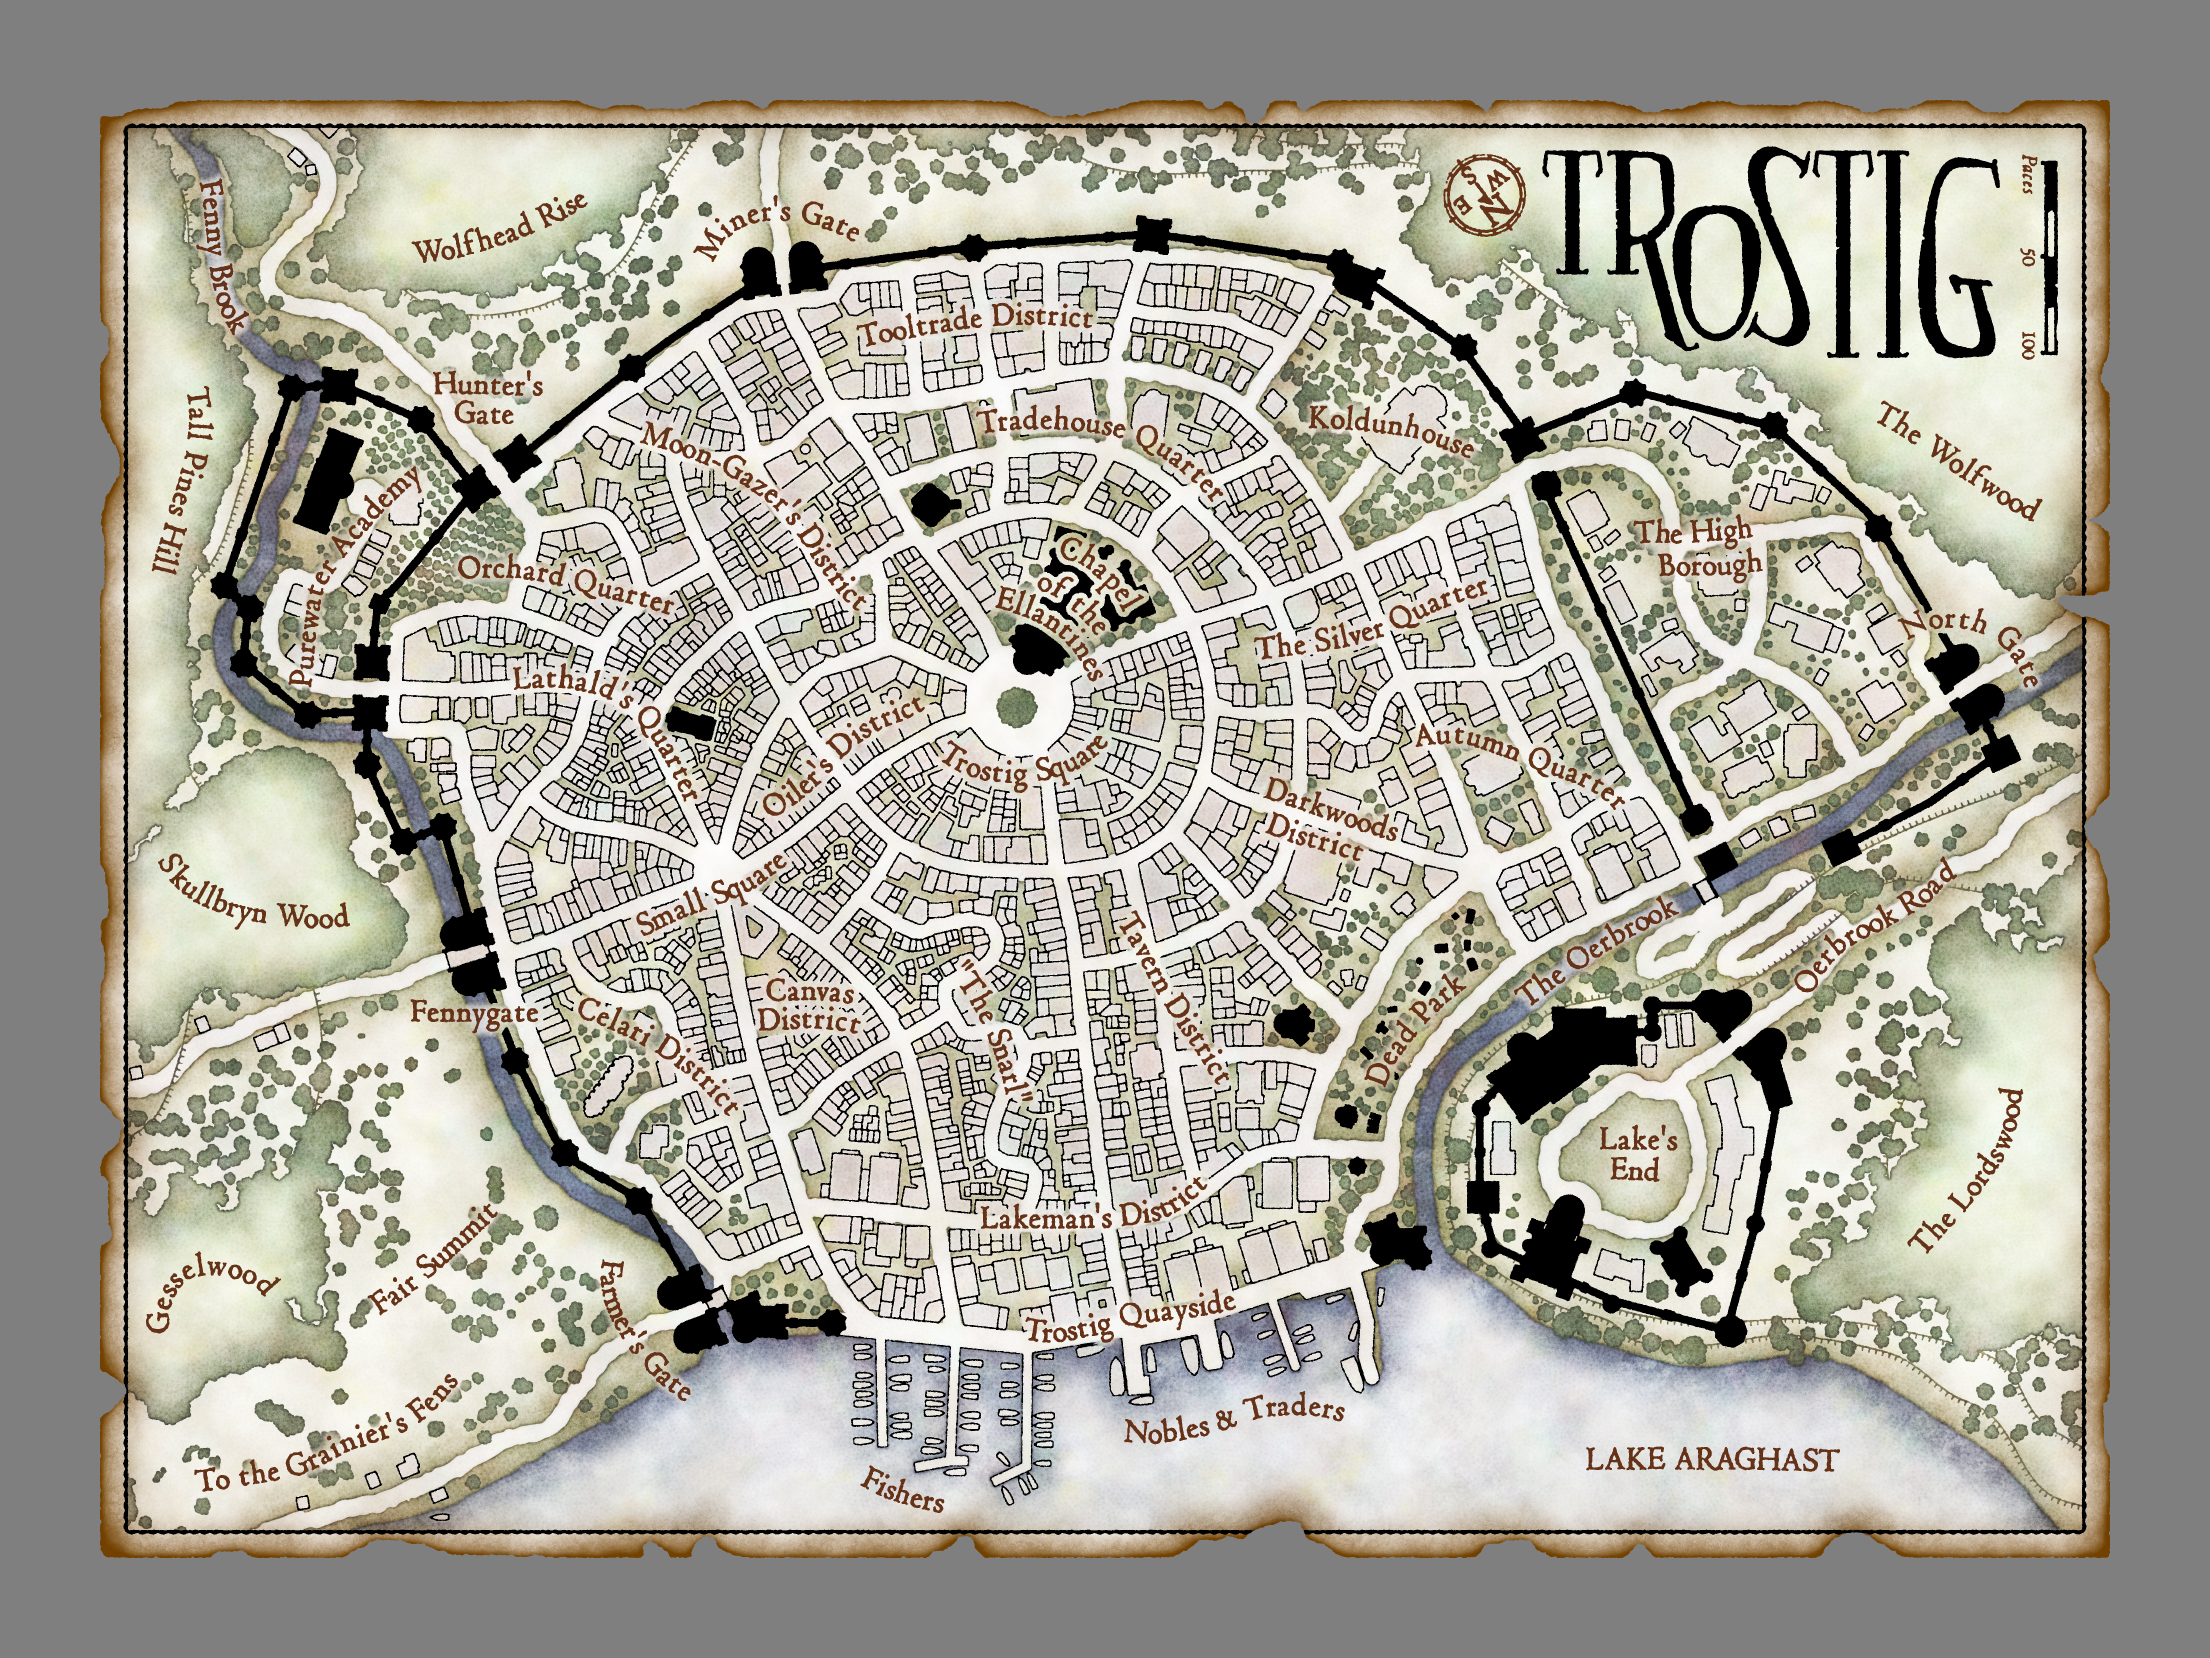 Trostig Town Plan (Side A)